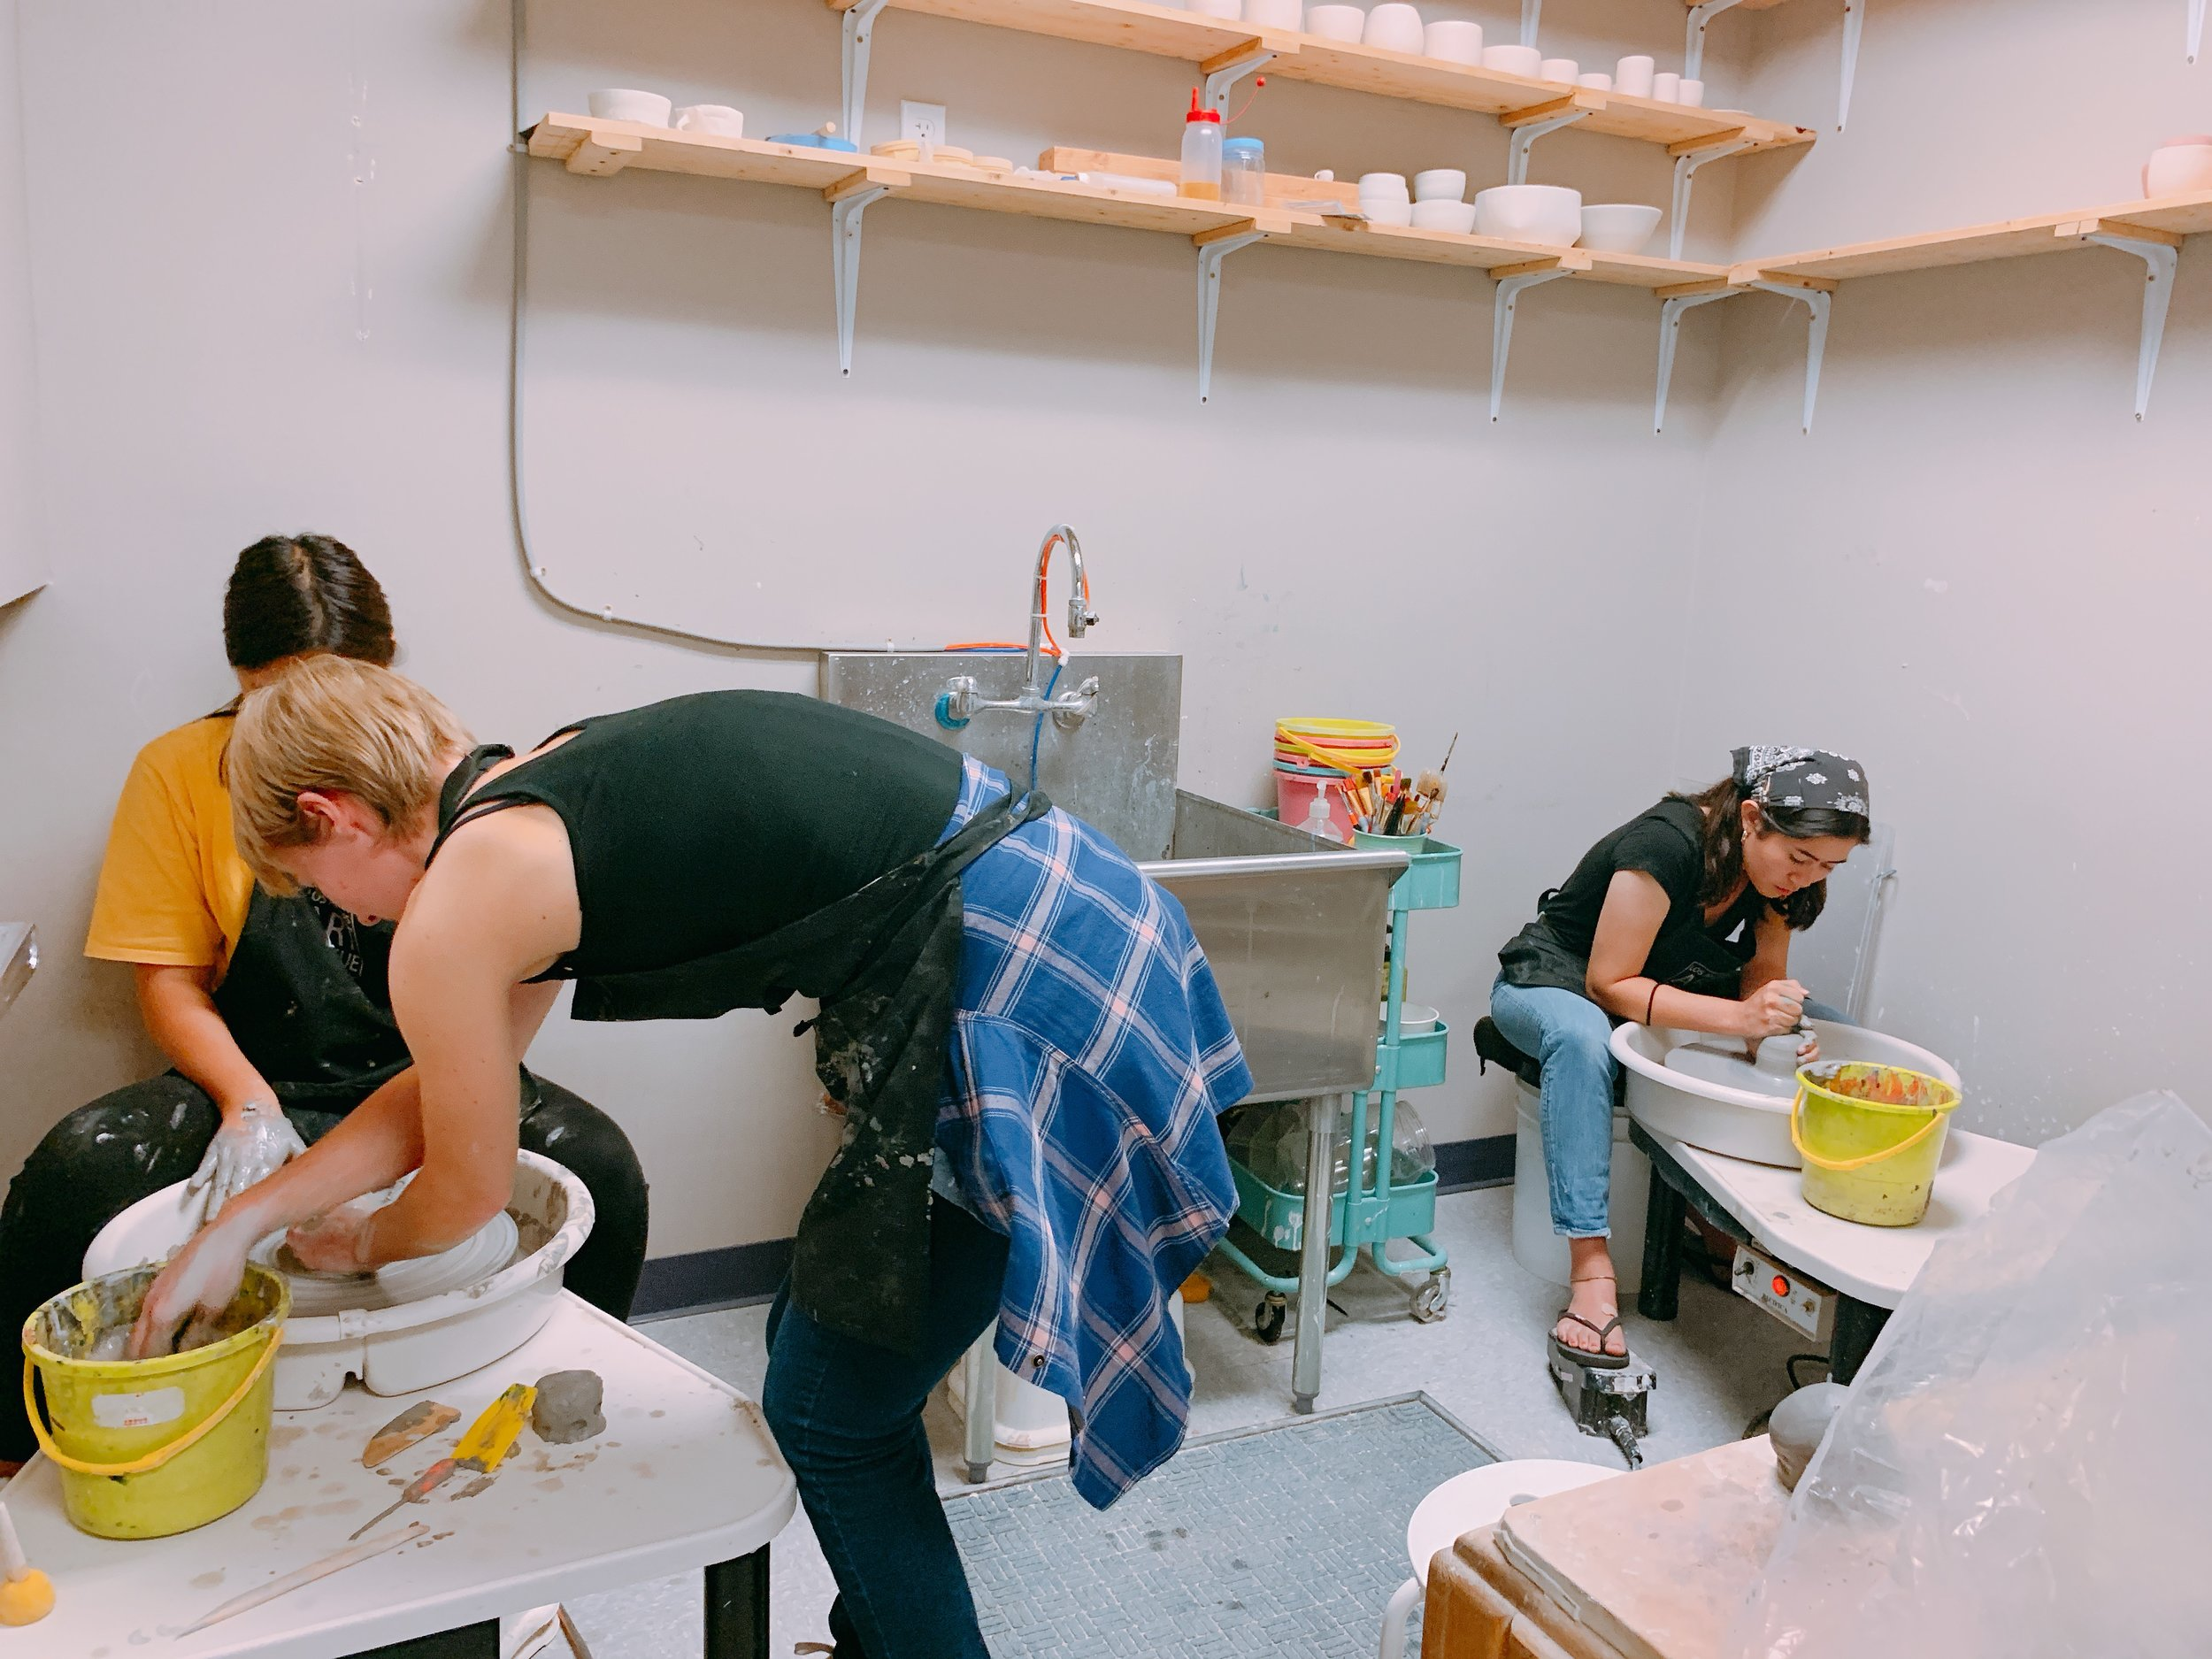 CERAMICS - Students will learn the wheel throwing process, and be able to make a cup, bowl and vase by the end of the class. Students will learn how to wedge clay, center their clay on the wheel and how to pull walls into various forms.